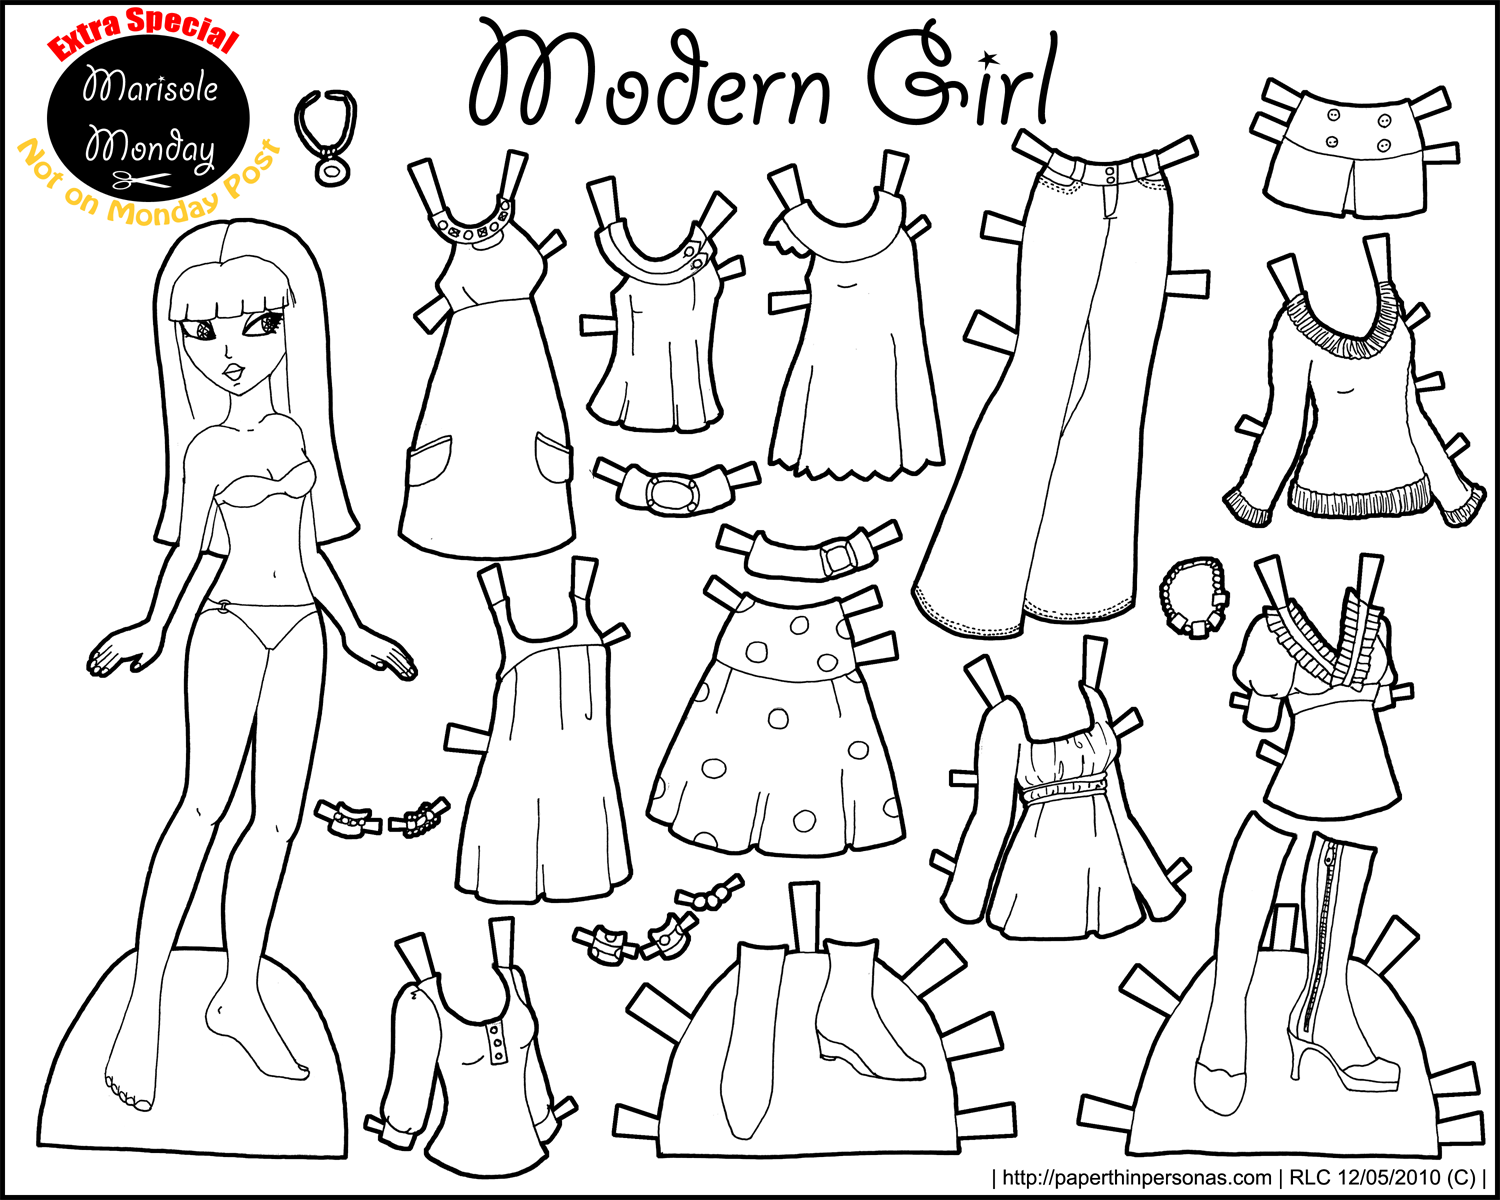 Black and White Printable Paper Doll from the Marisole